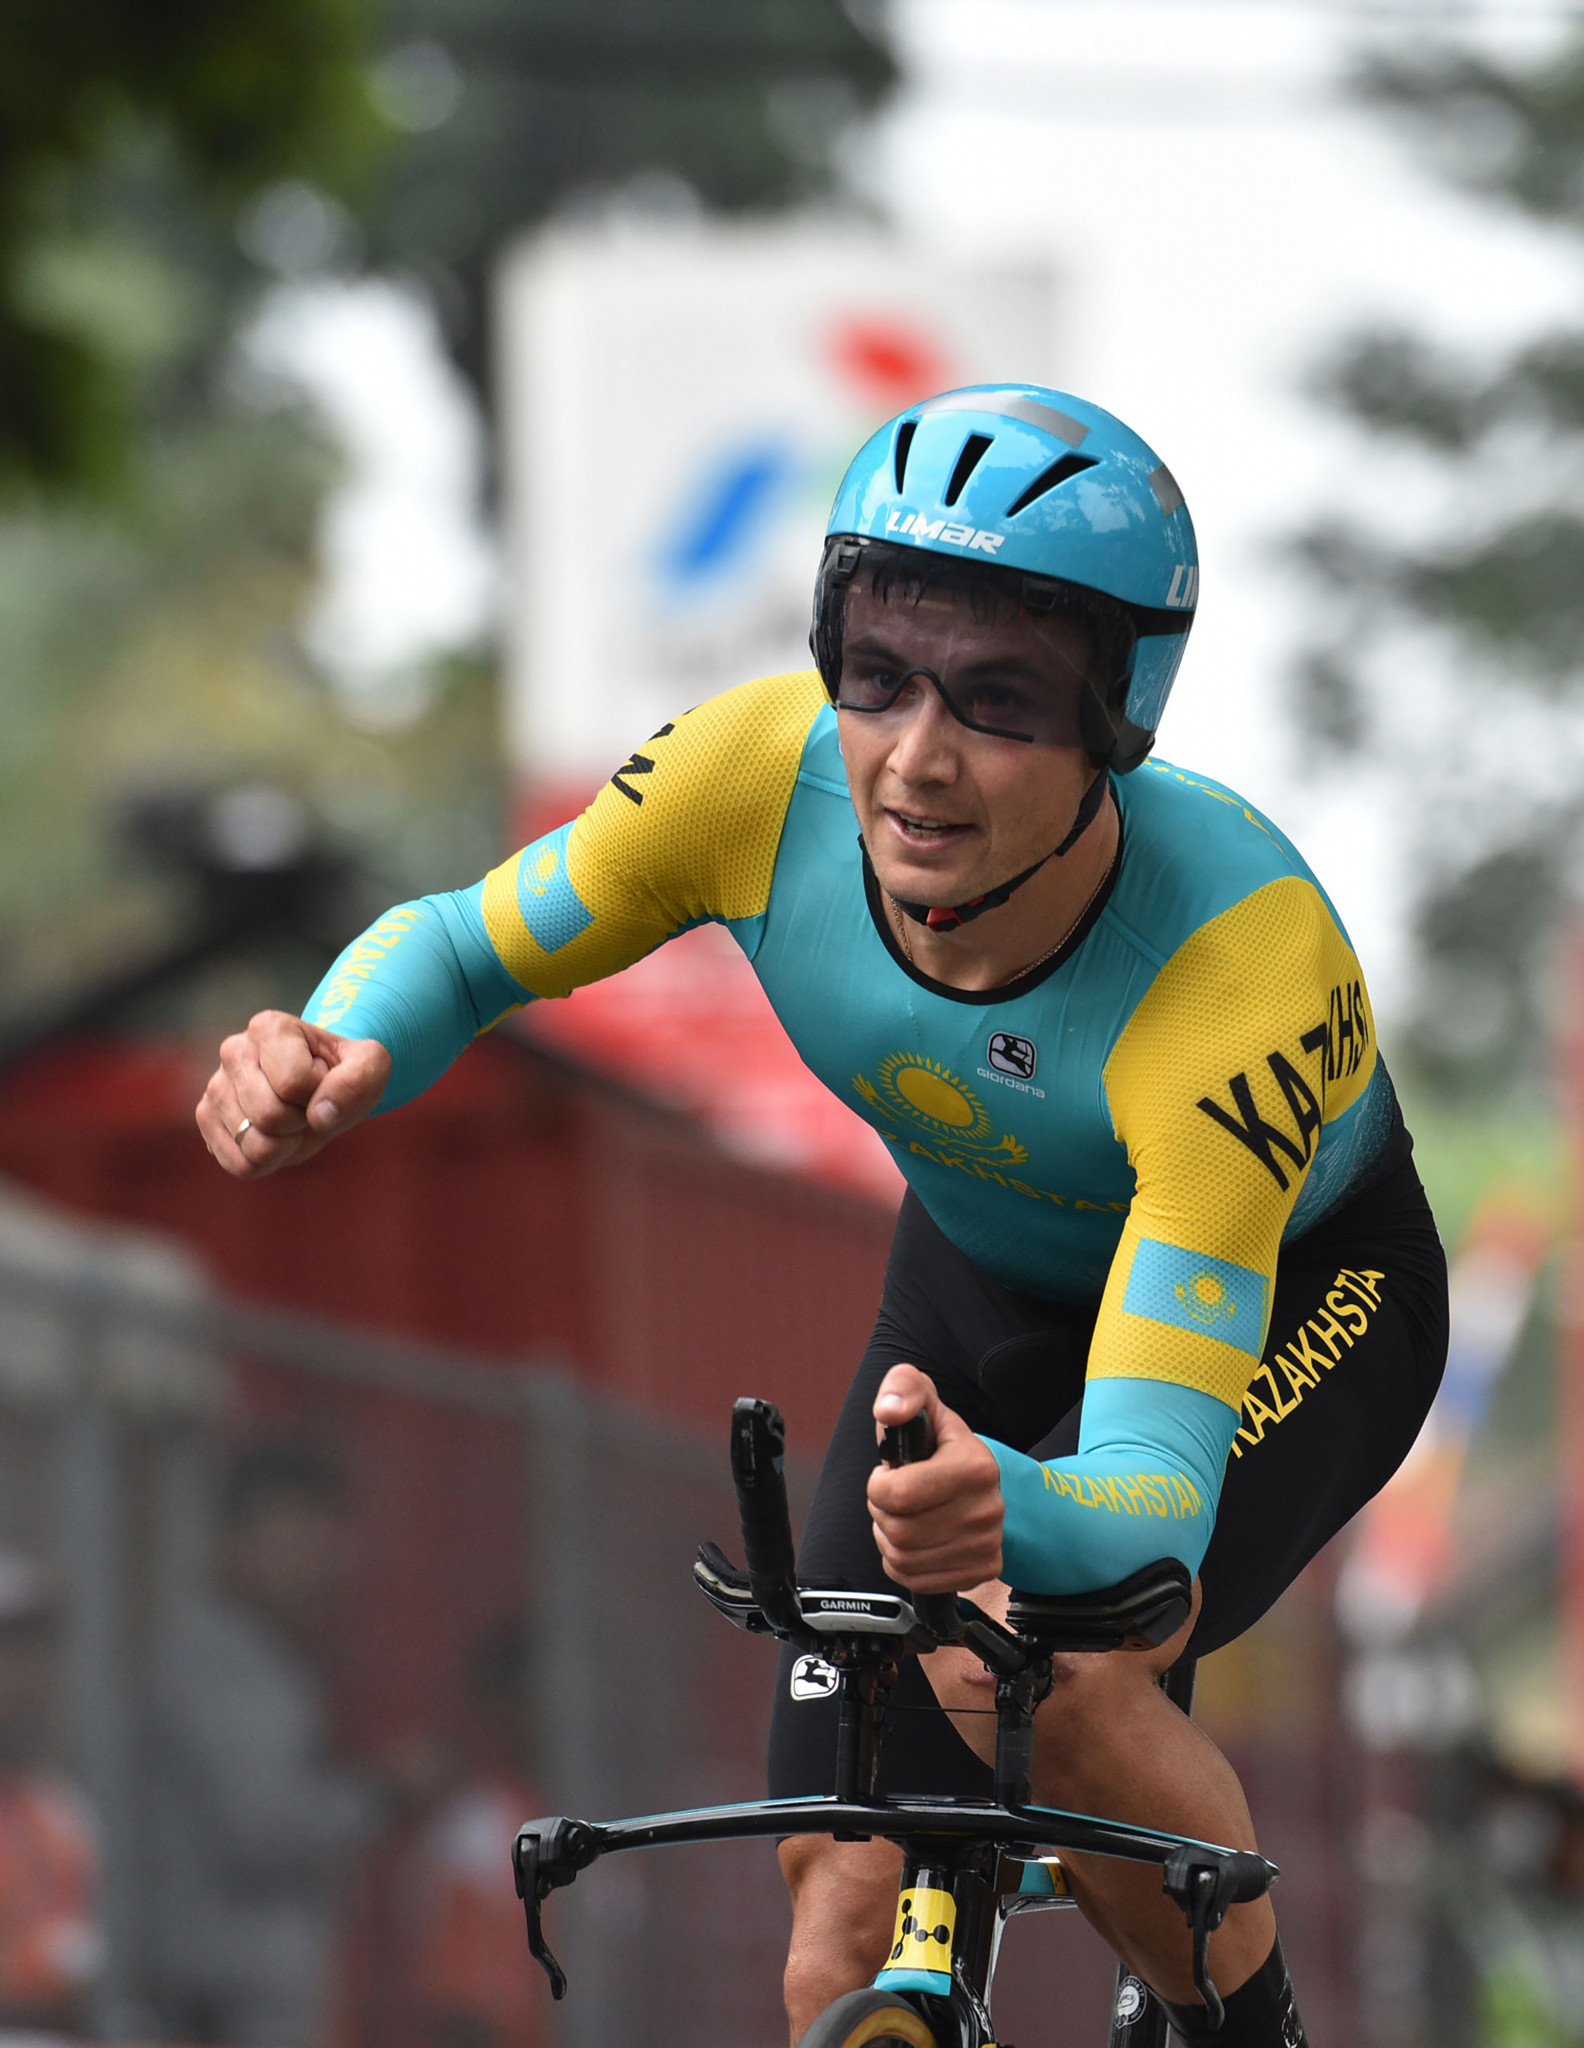 Alexey Lutsenko won the men's time trial to complete an unprecedented double ©Getty Images